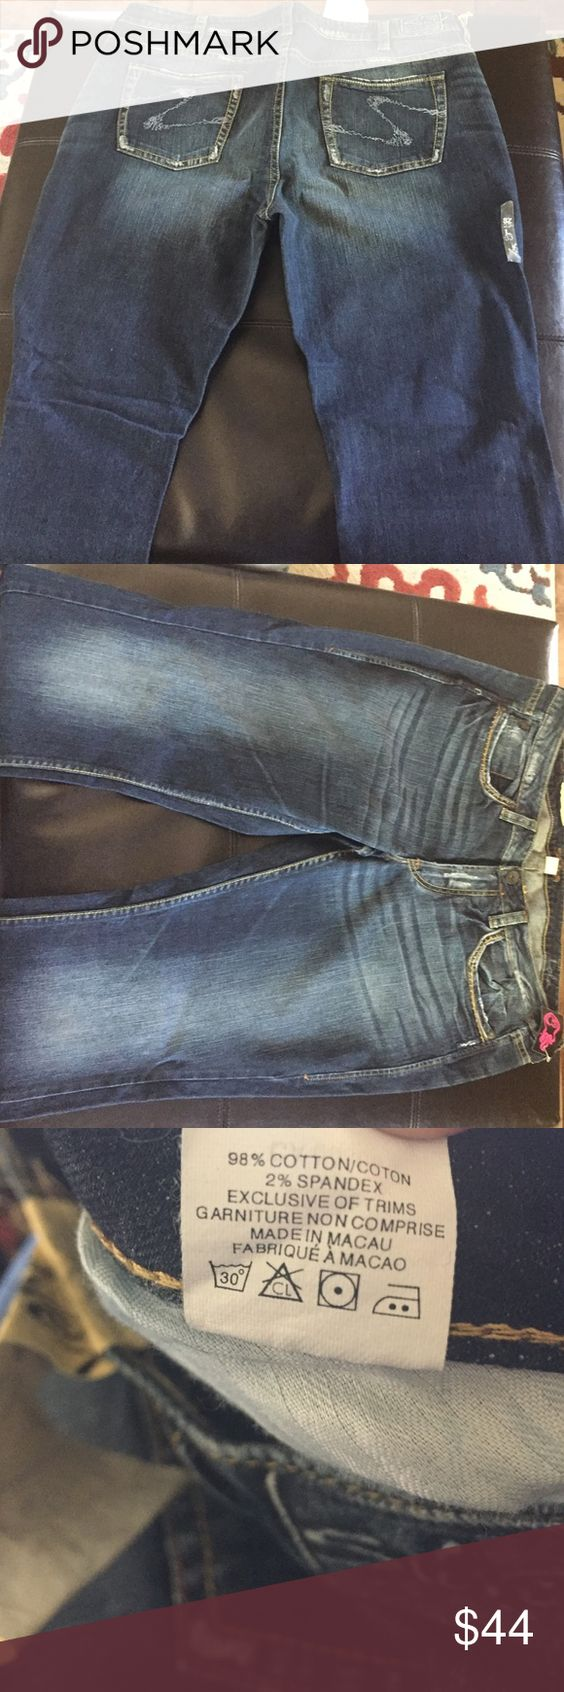 Silver Jeans Size 33